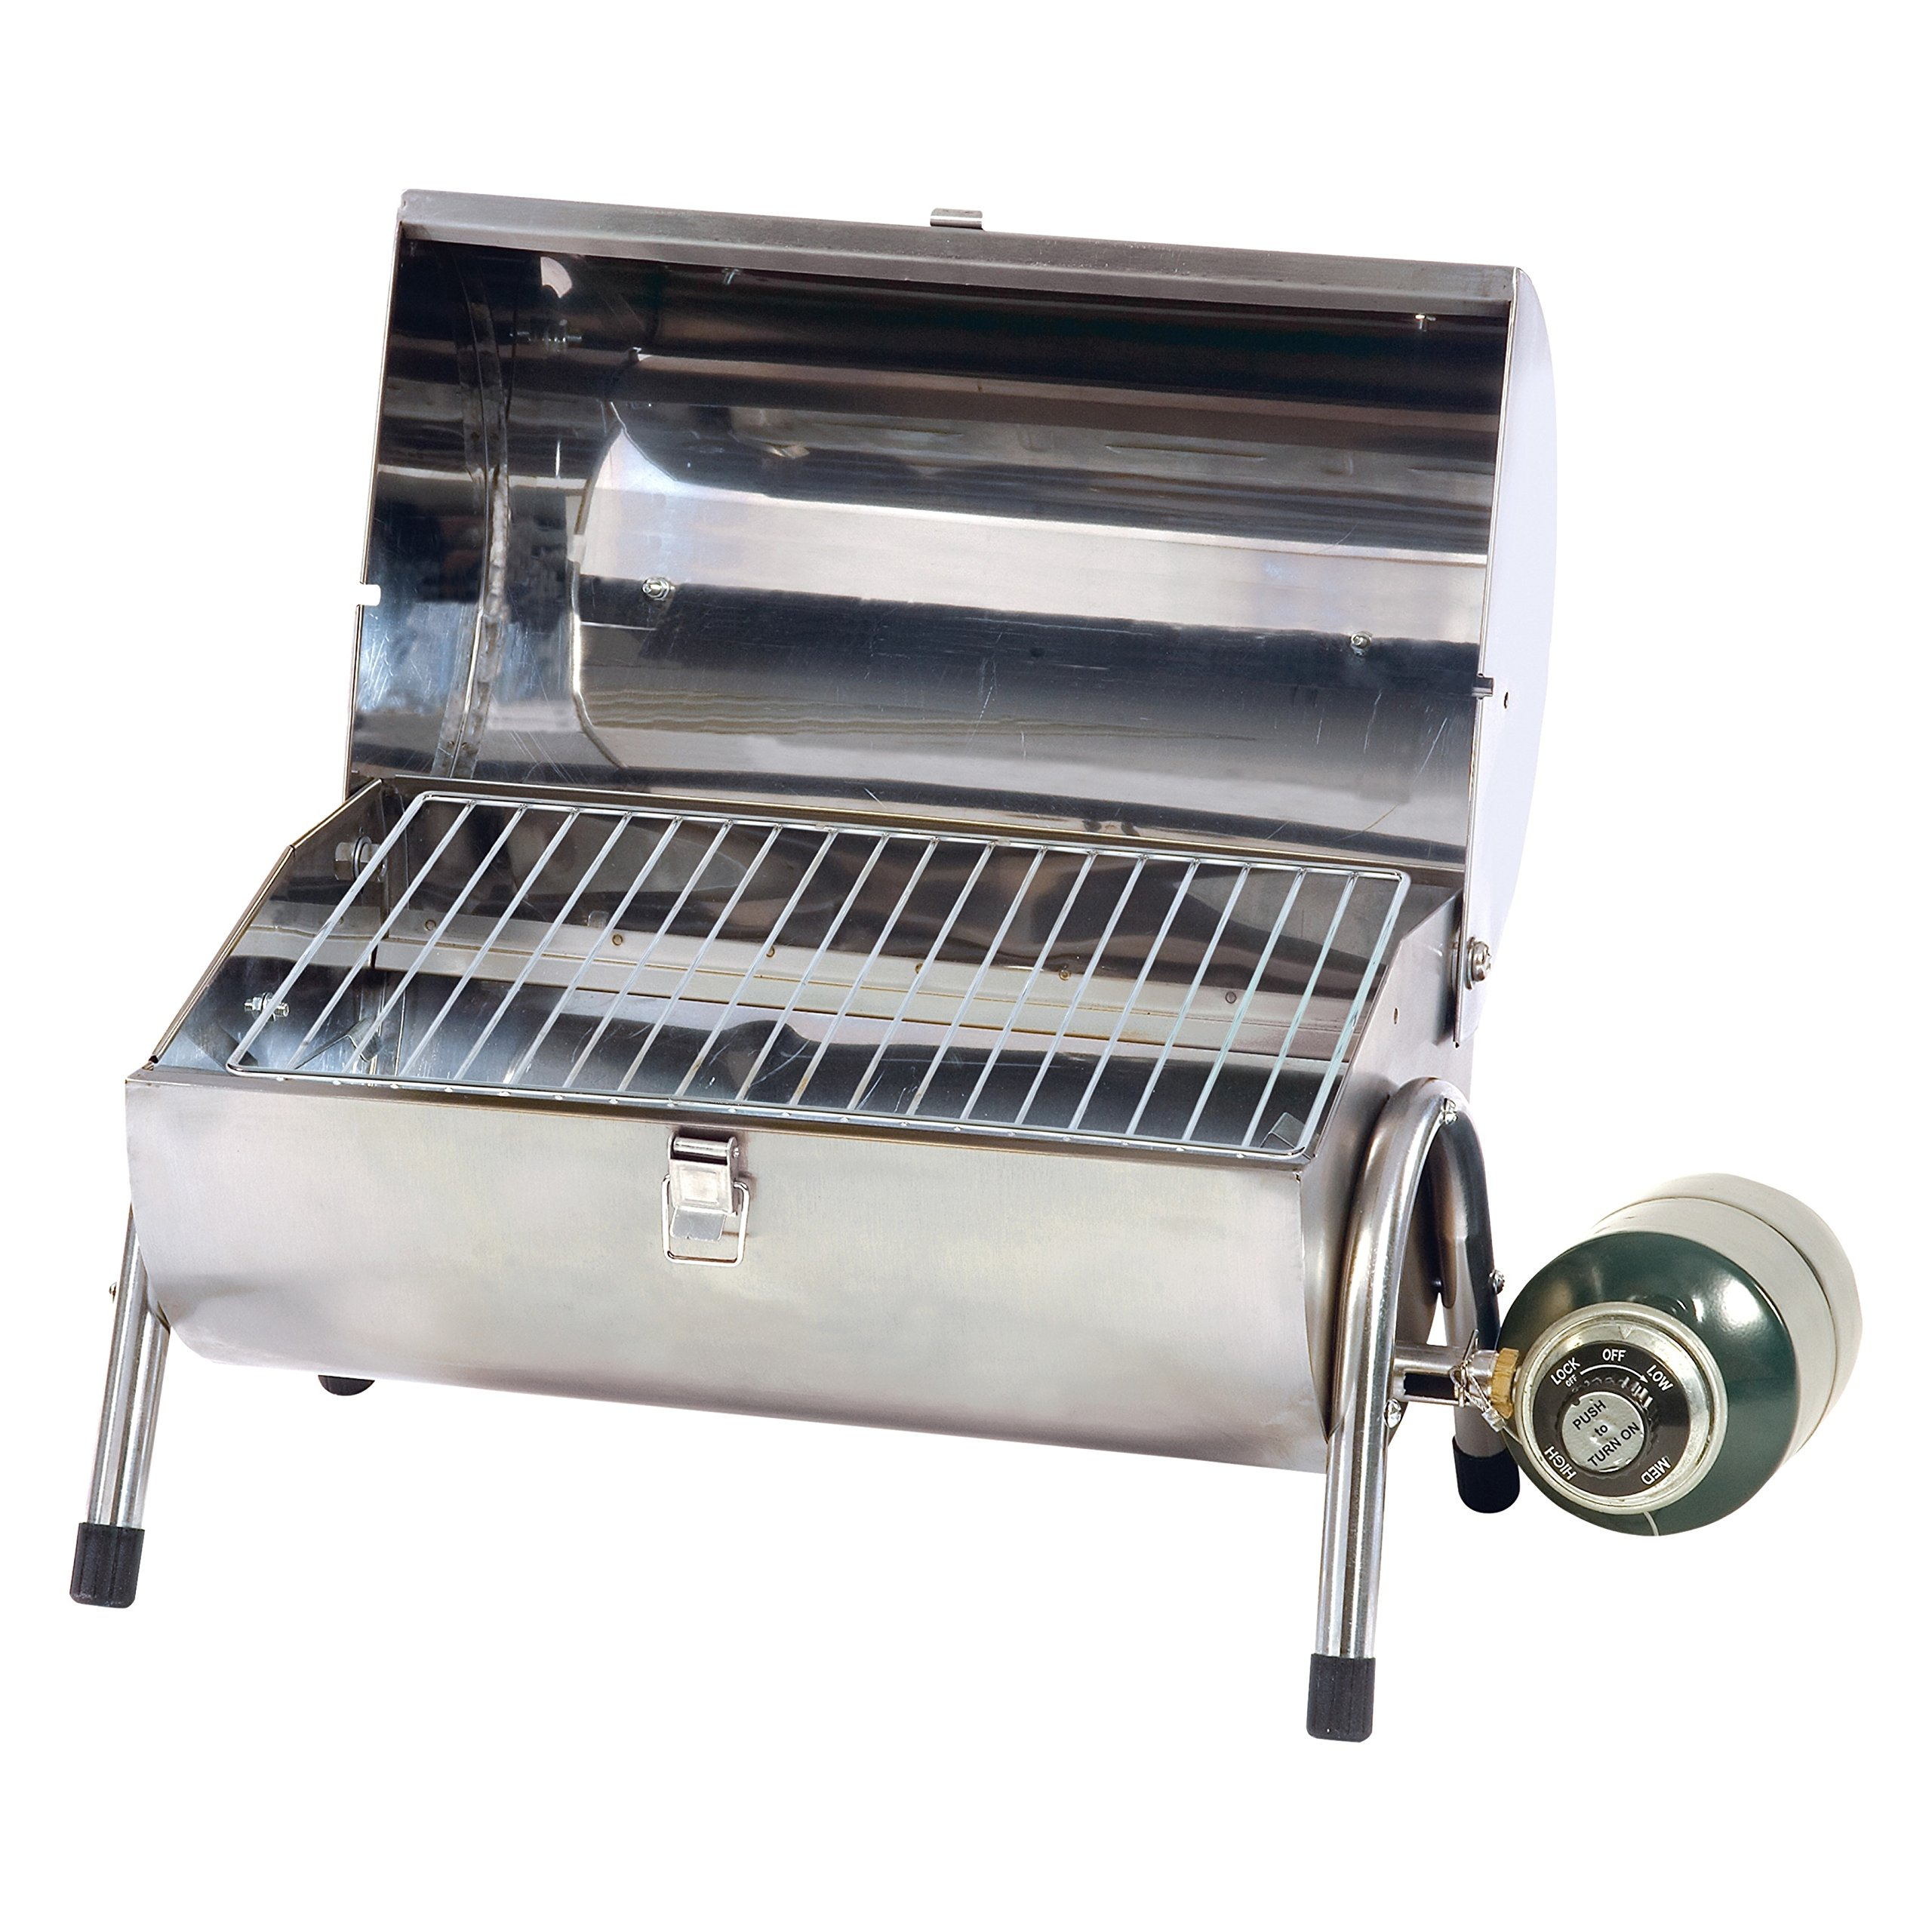 Durable Stainless Steel Construction Lightweight Propane BBQ Grill